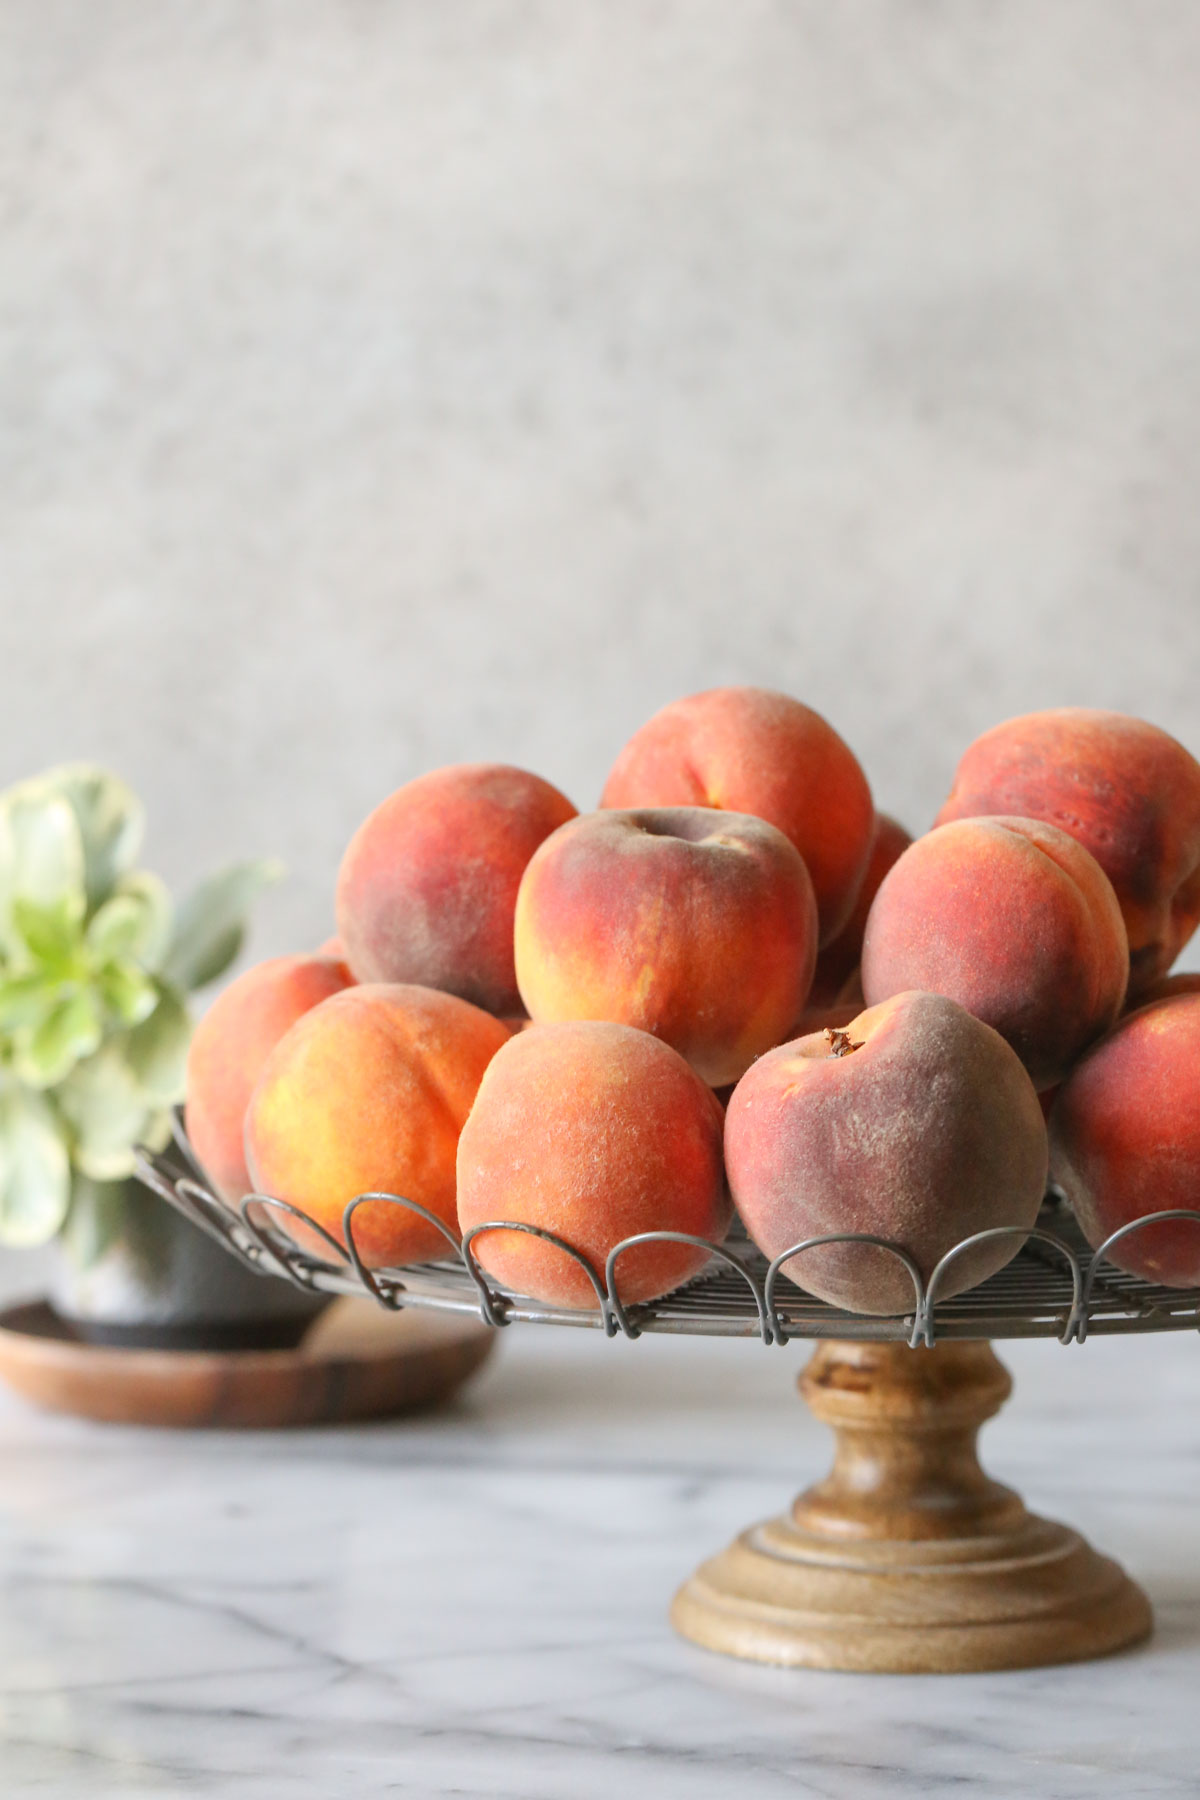 A cake stand with peaches piled on top of it.